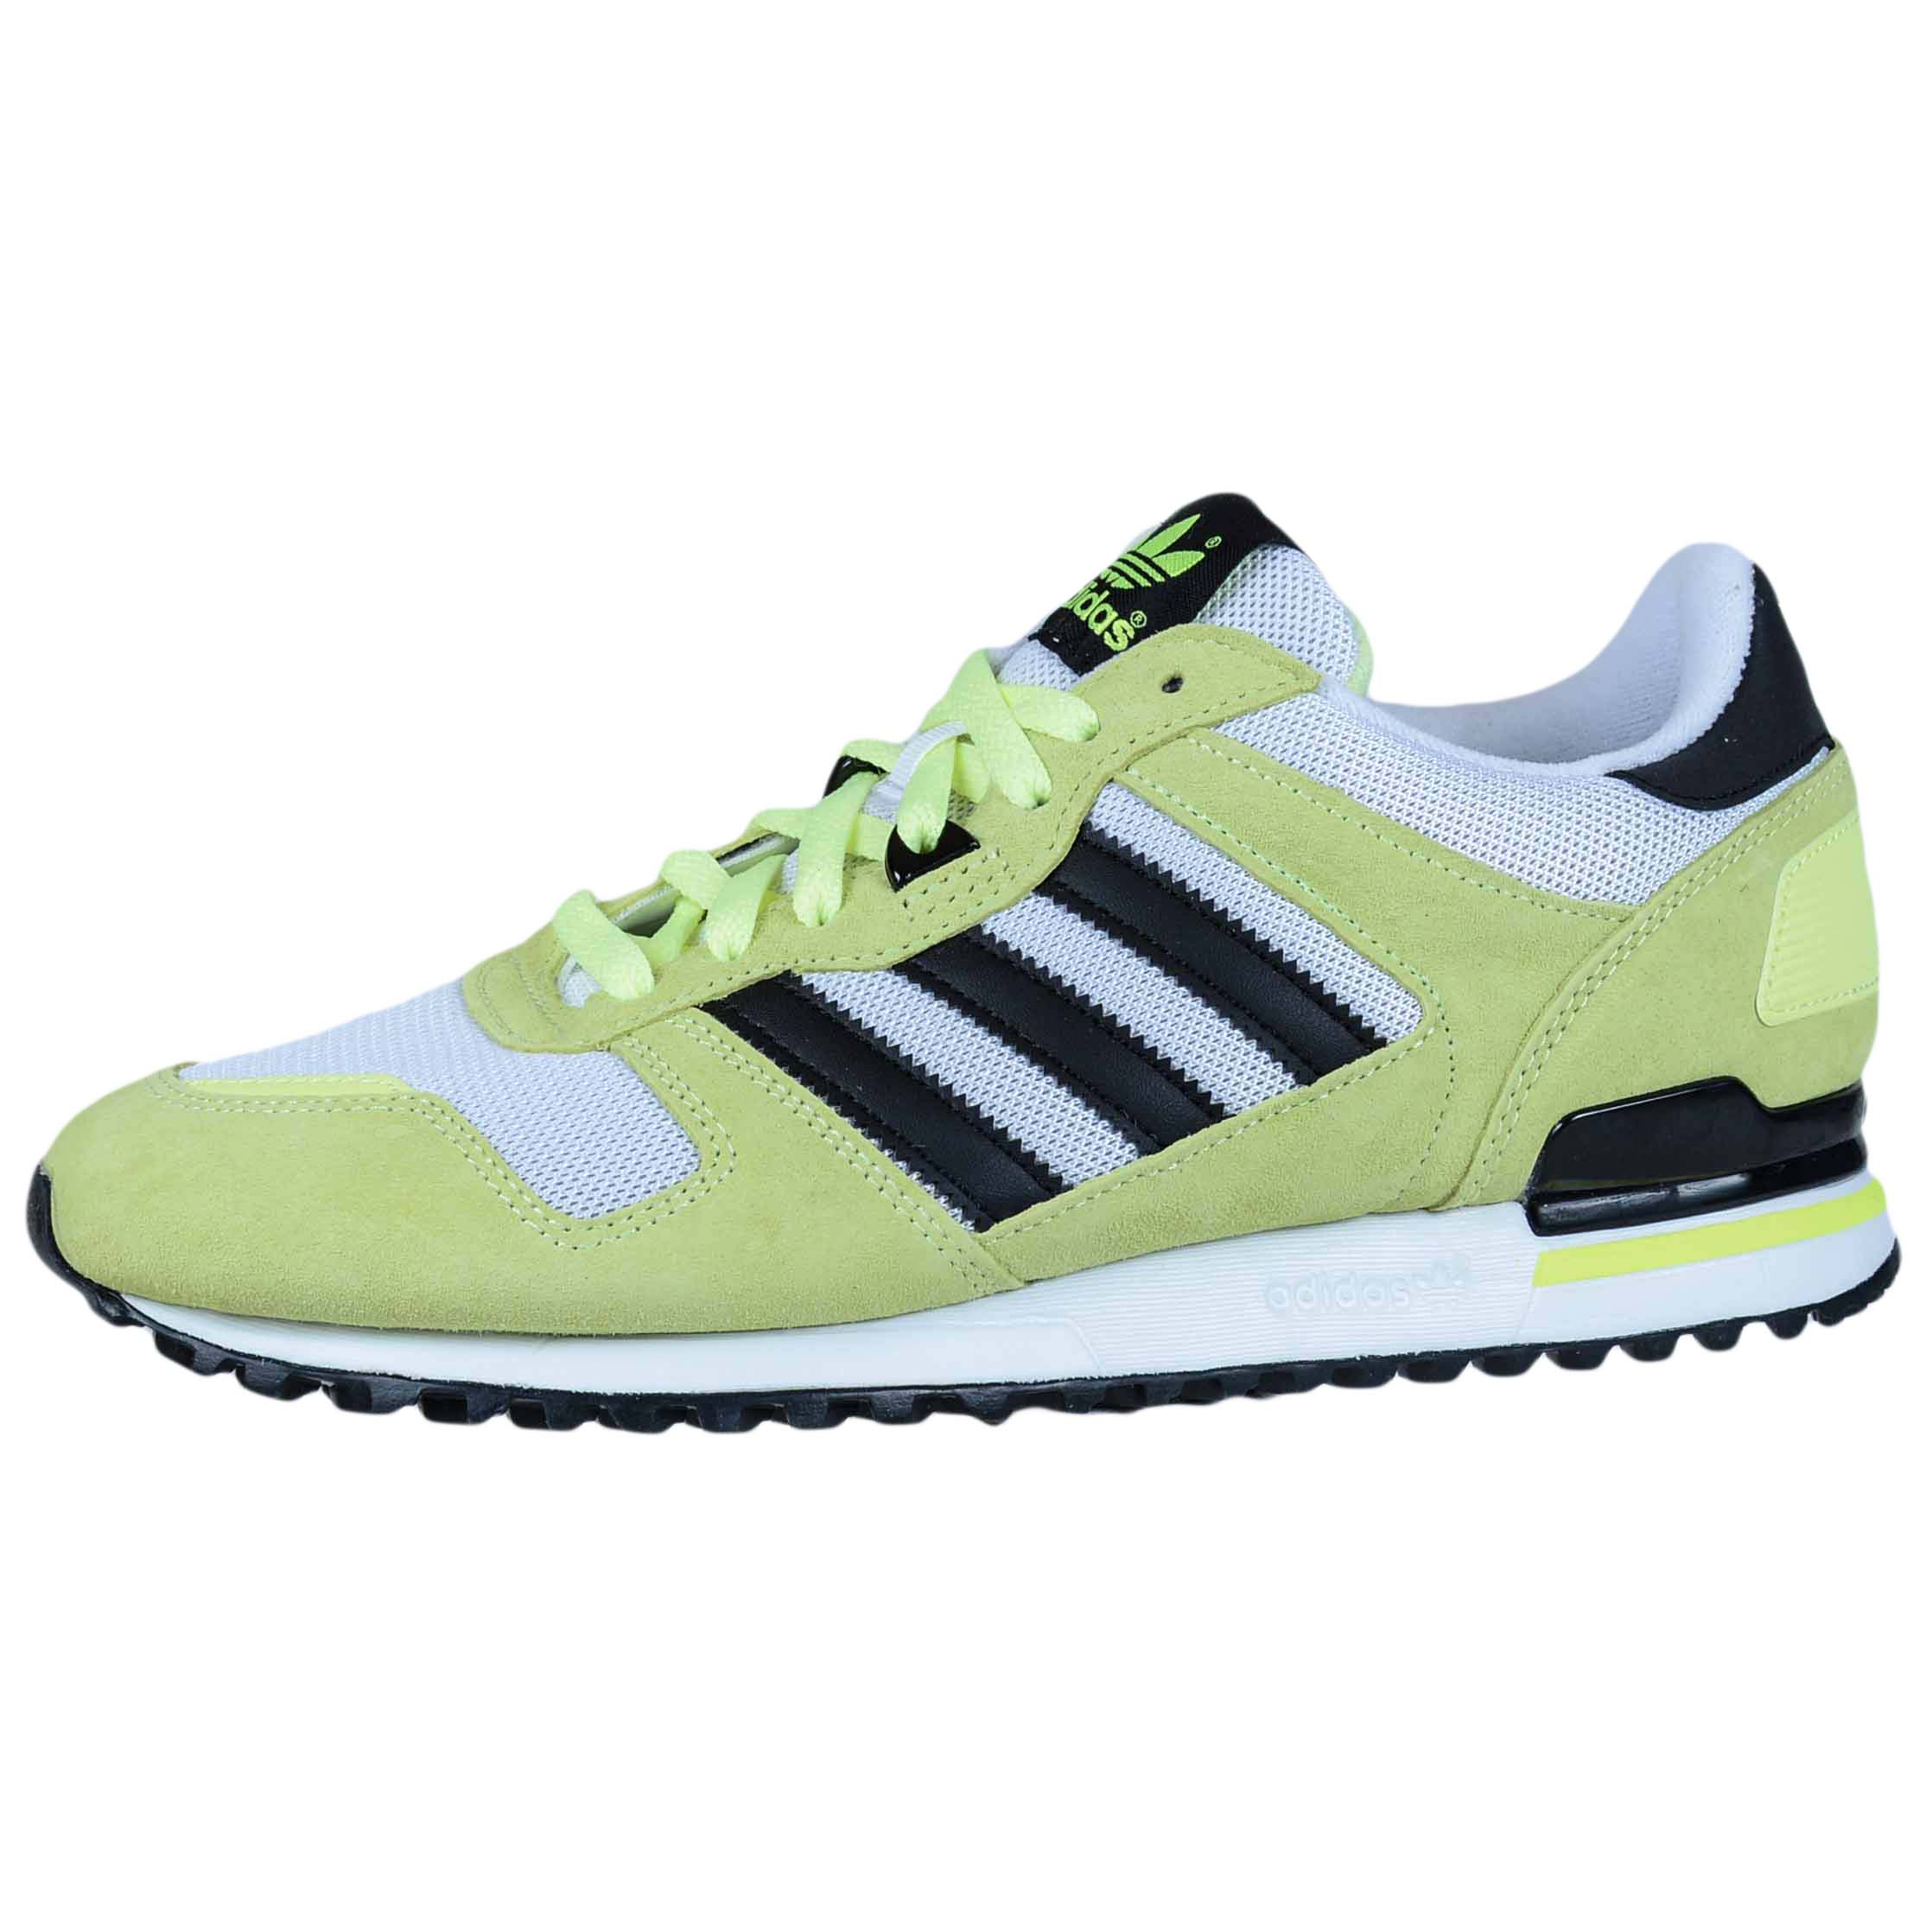 ADIDAS ZX 700 LIGHT FLASH YELLOW GREEN BLACK WHITE ORIGINALS M19394 MENS  RUNNING